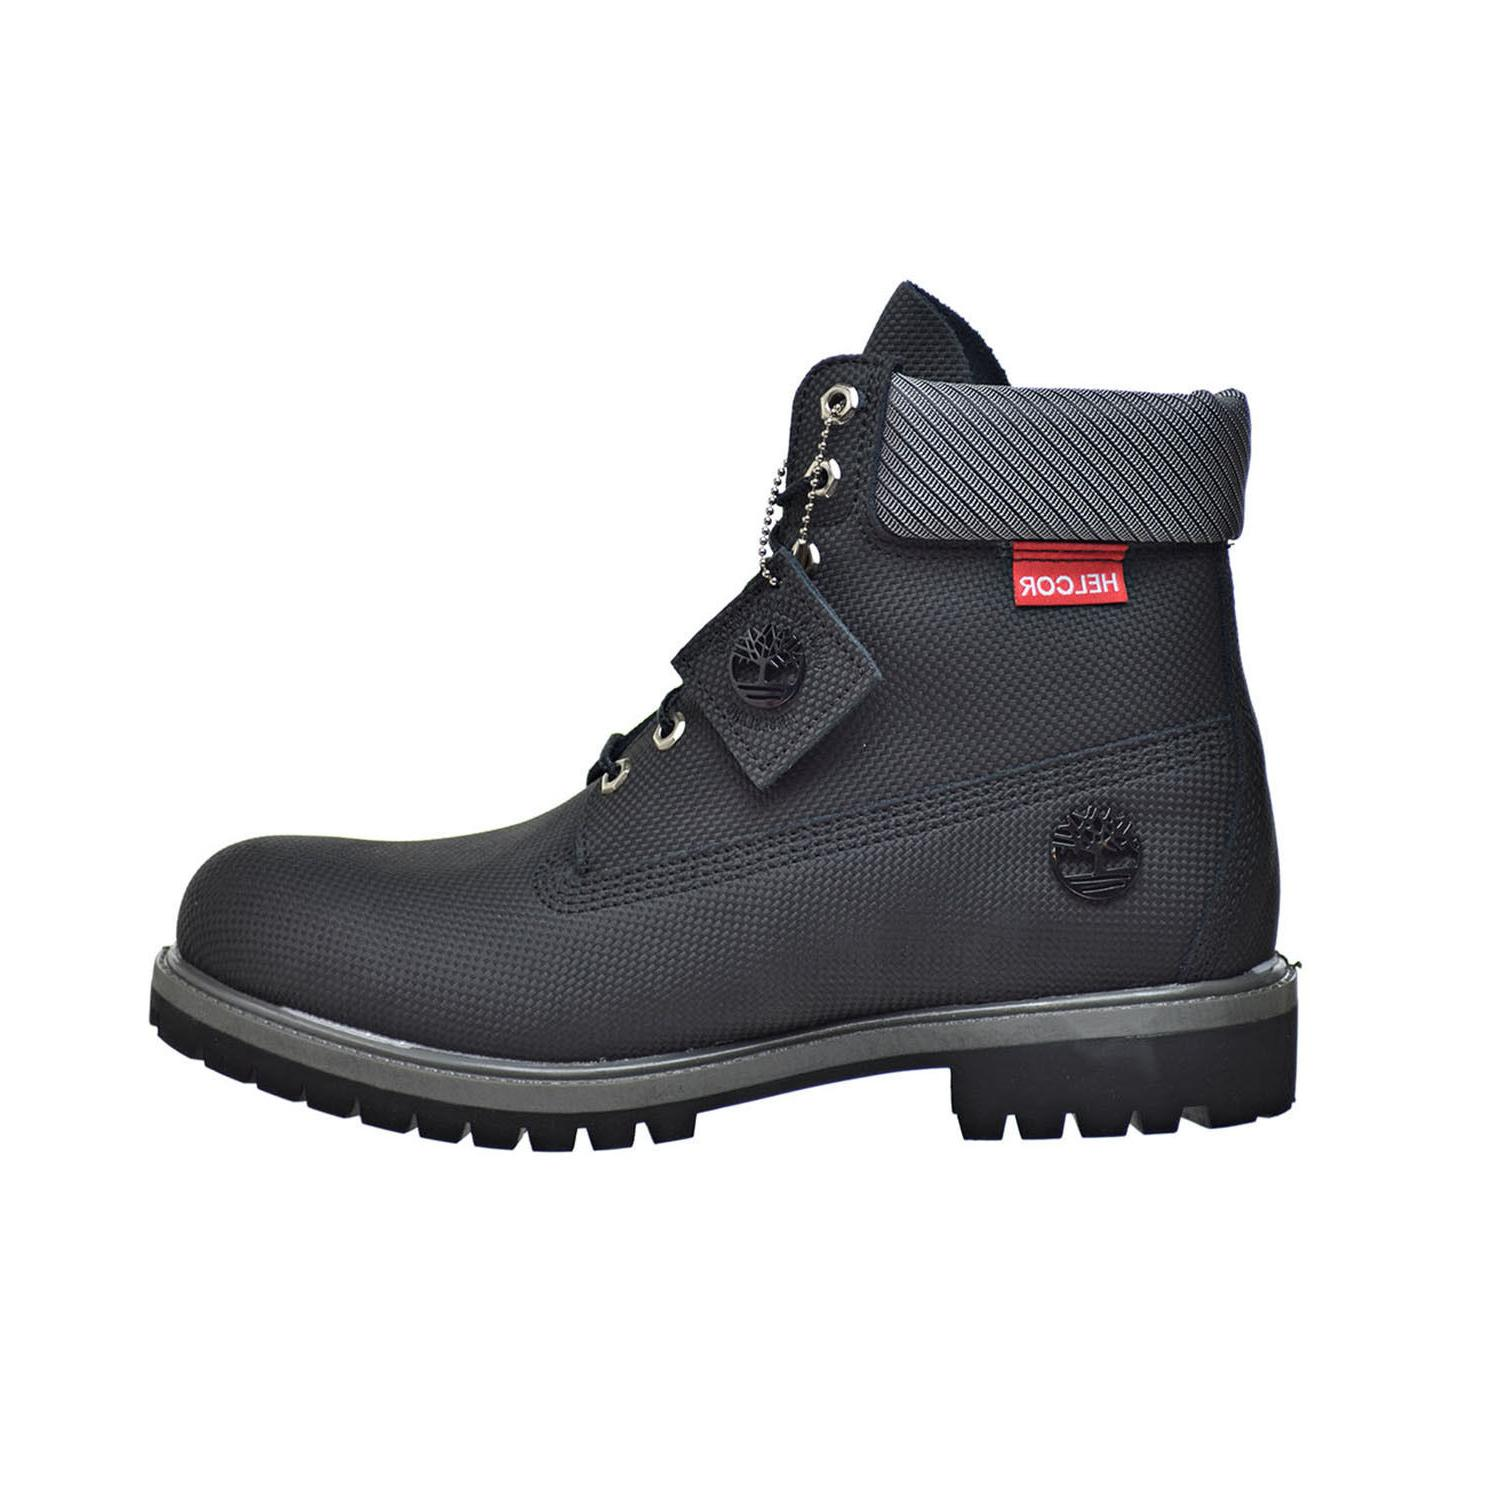 TIMBERLAND BLACK LEATHER PREMIUM BOOTS A181U Sz:8-13